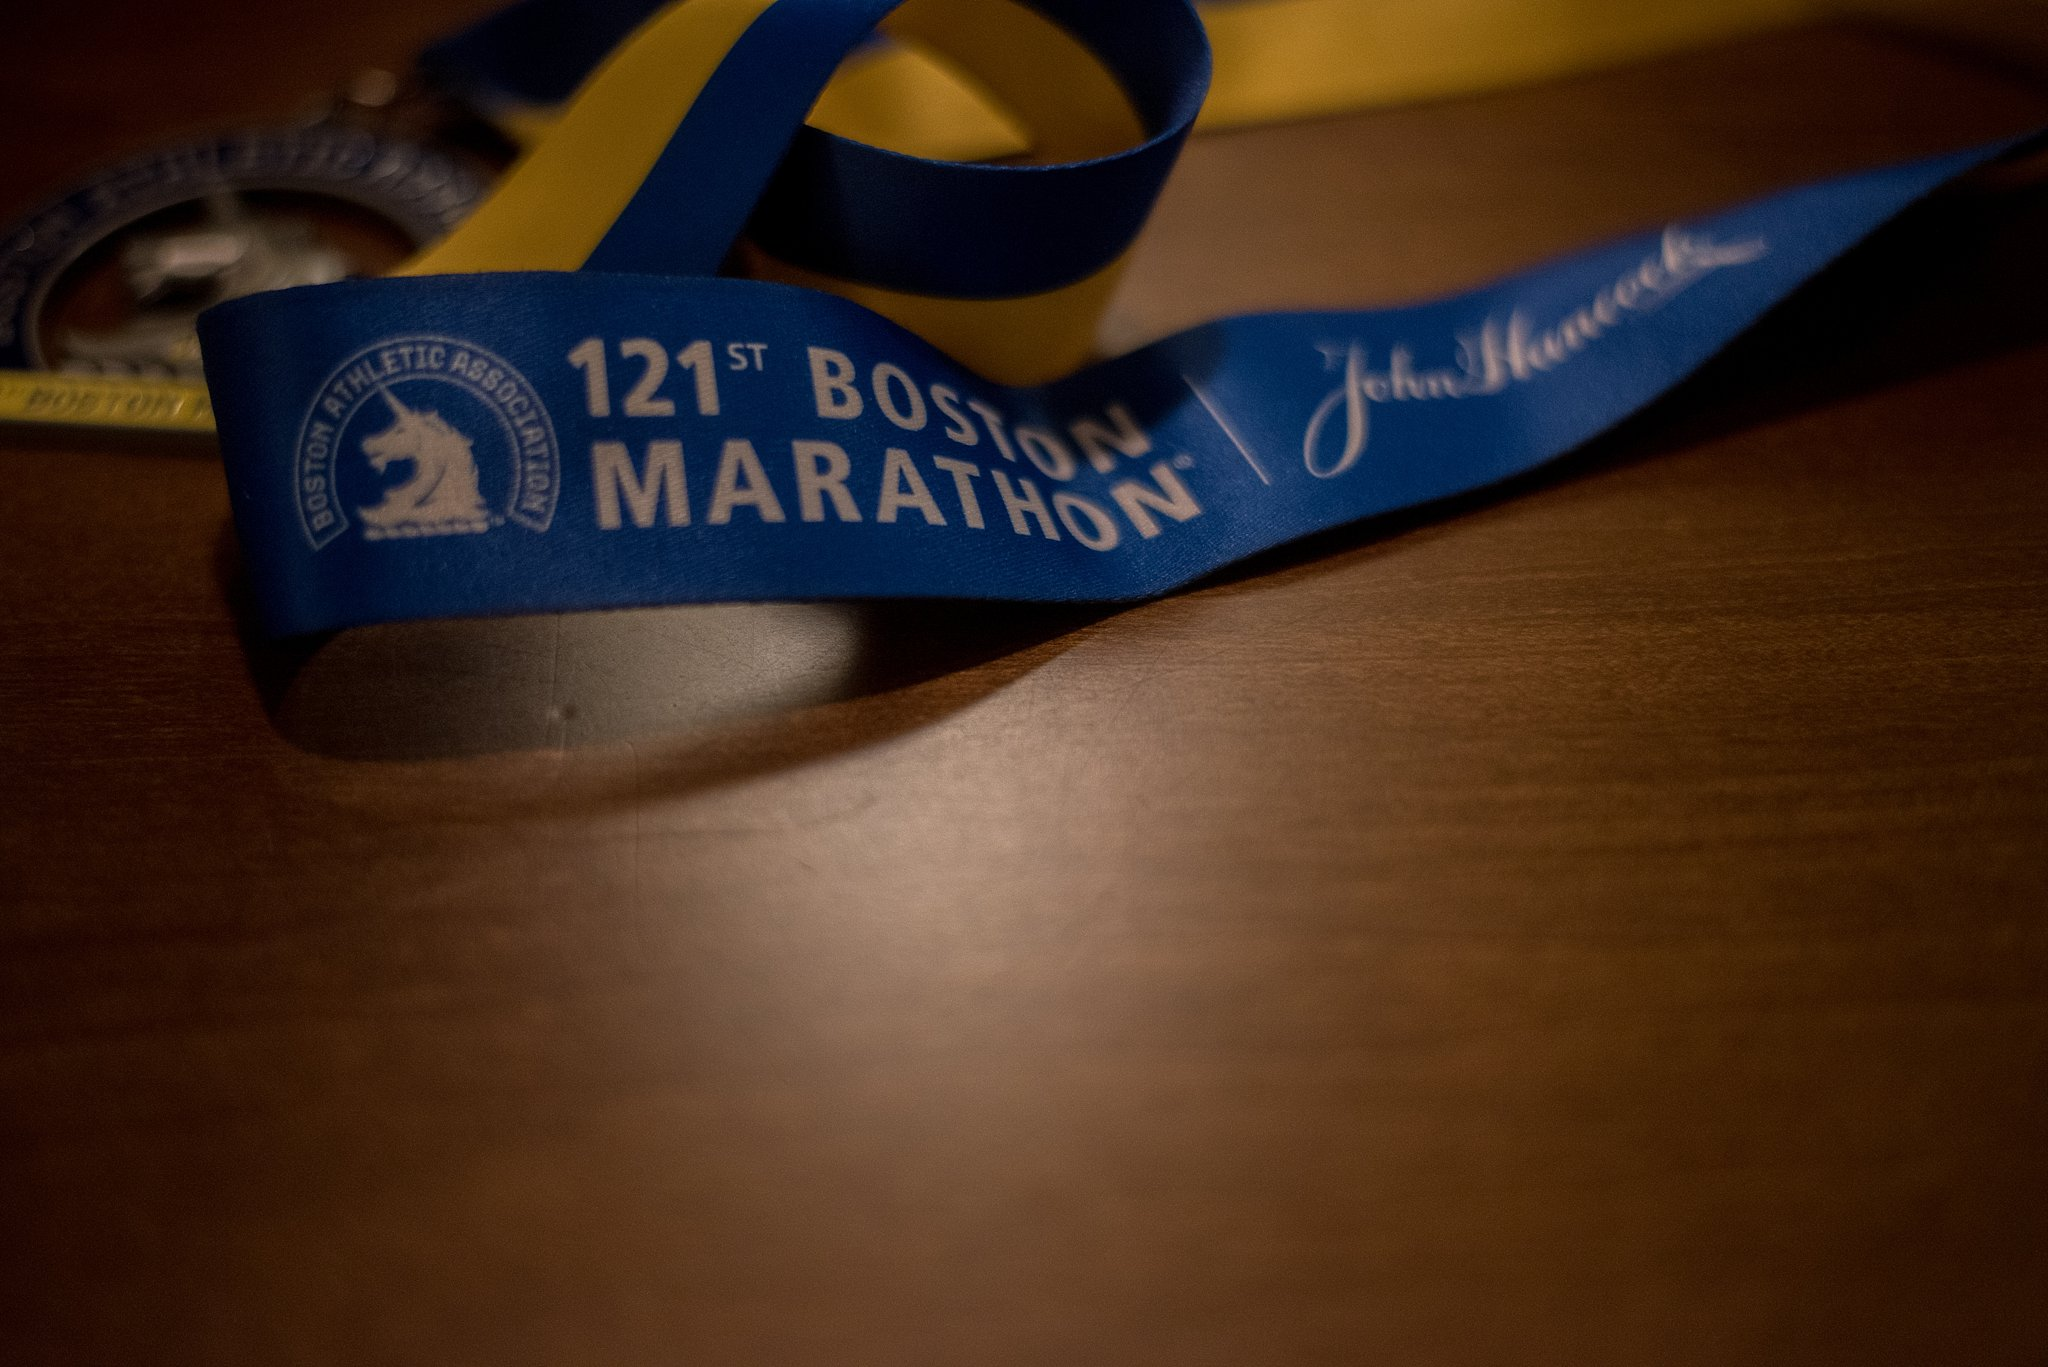 Medal for competing in Boston Marathon